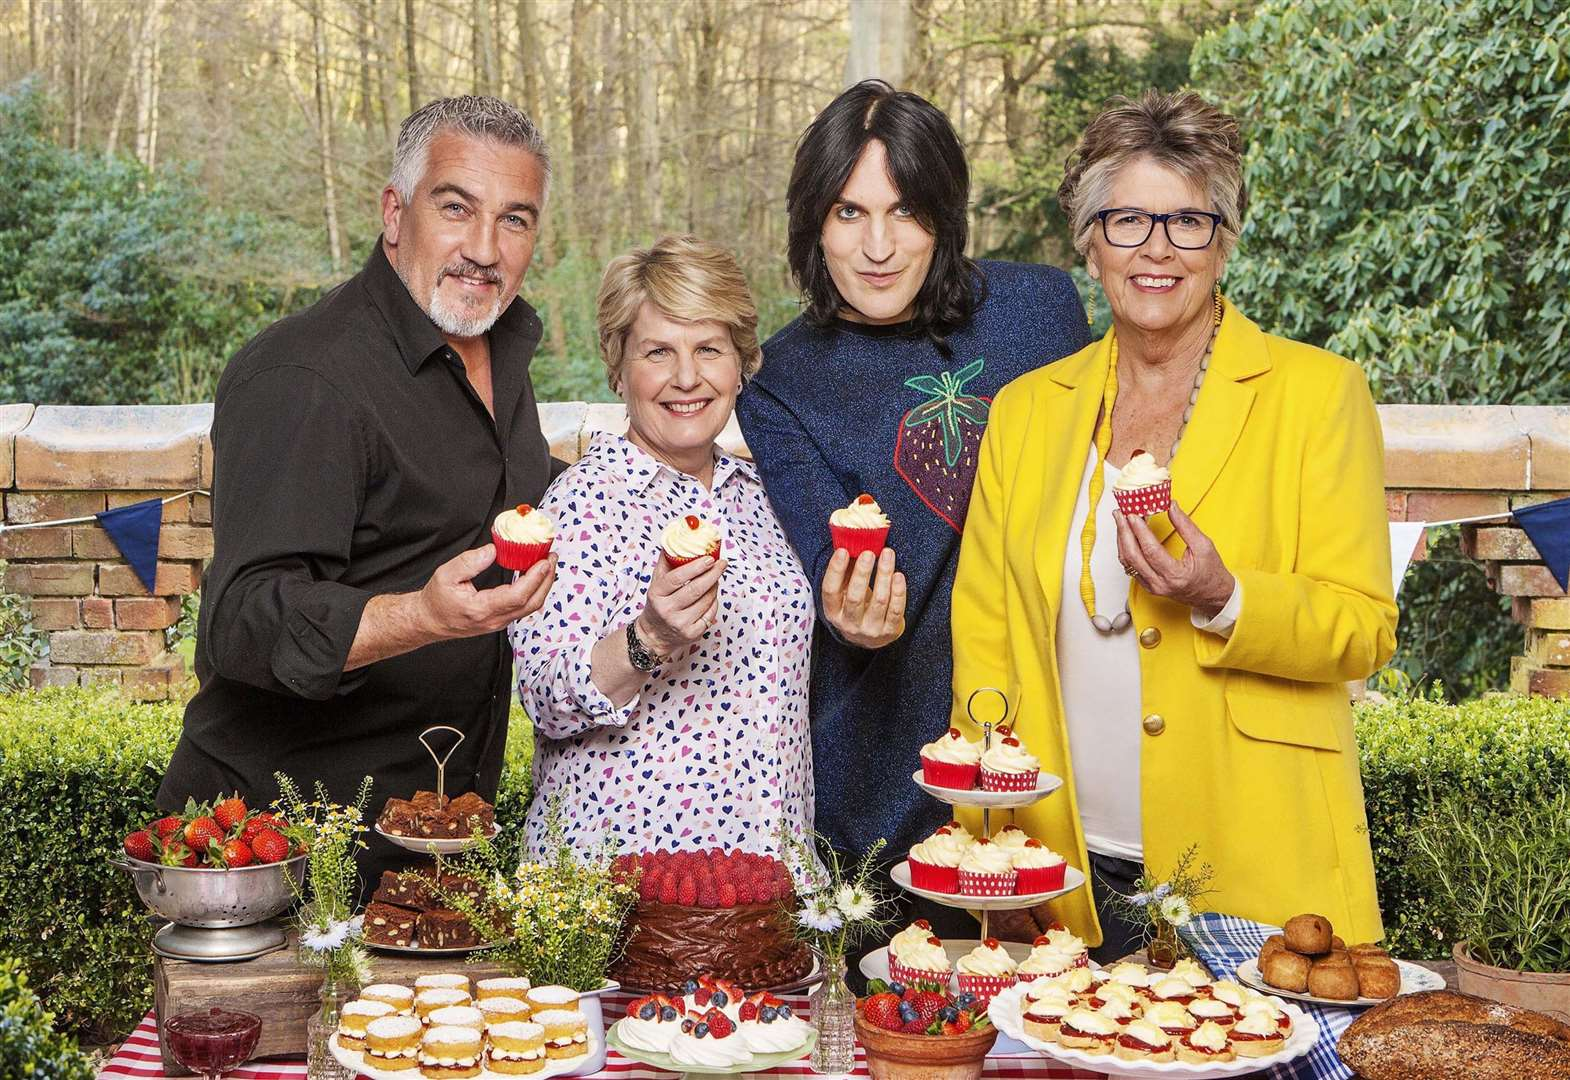 Great British Bake Off's Prue Leith heads to Newmarket to sign copies of her latest recipe book